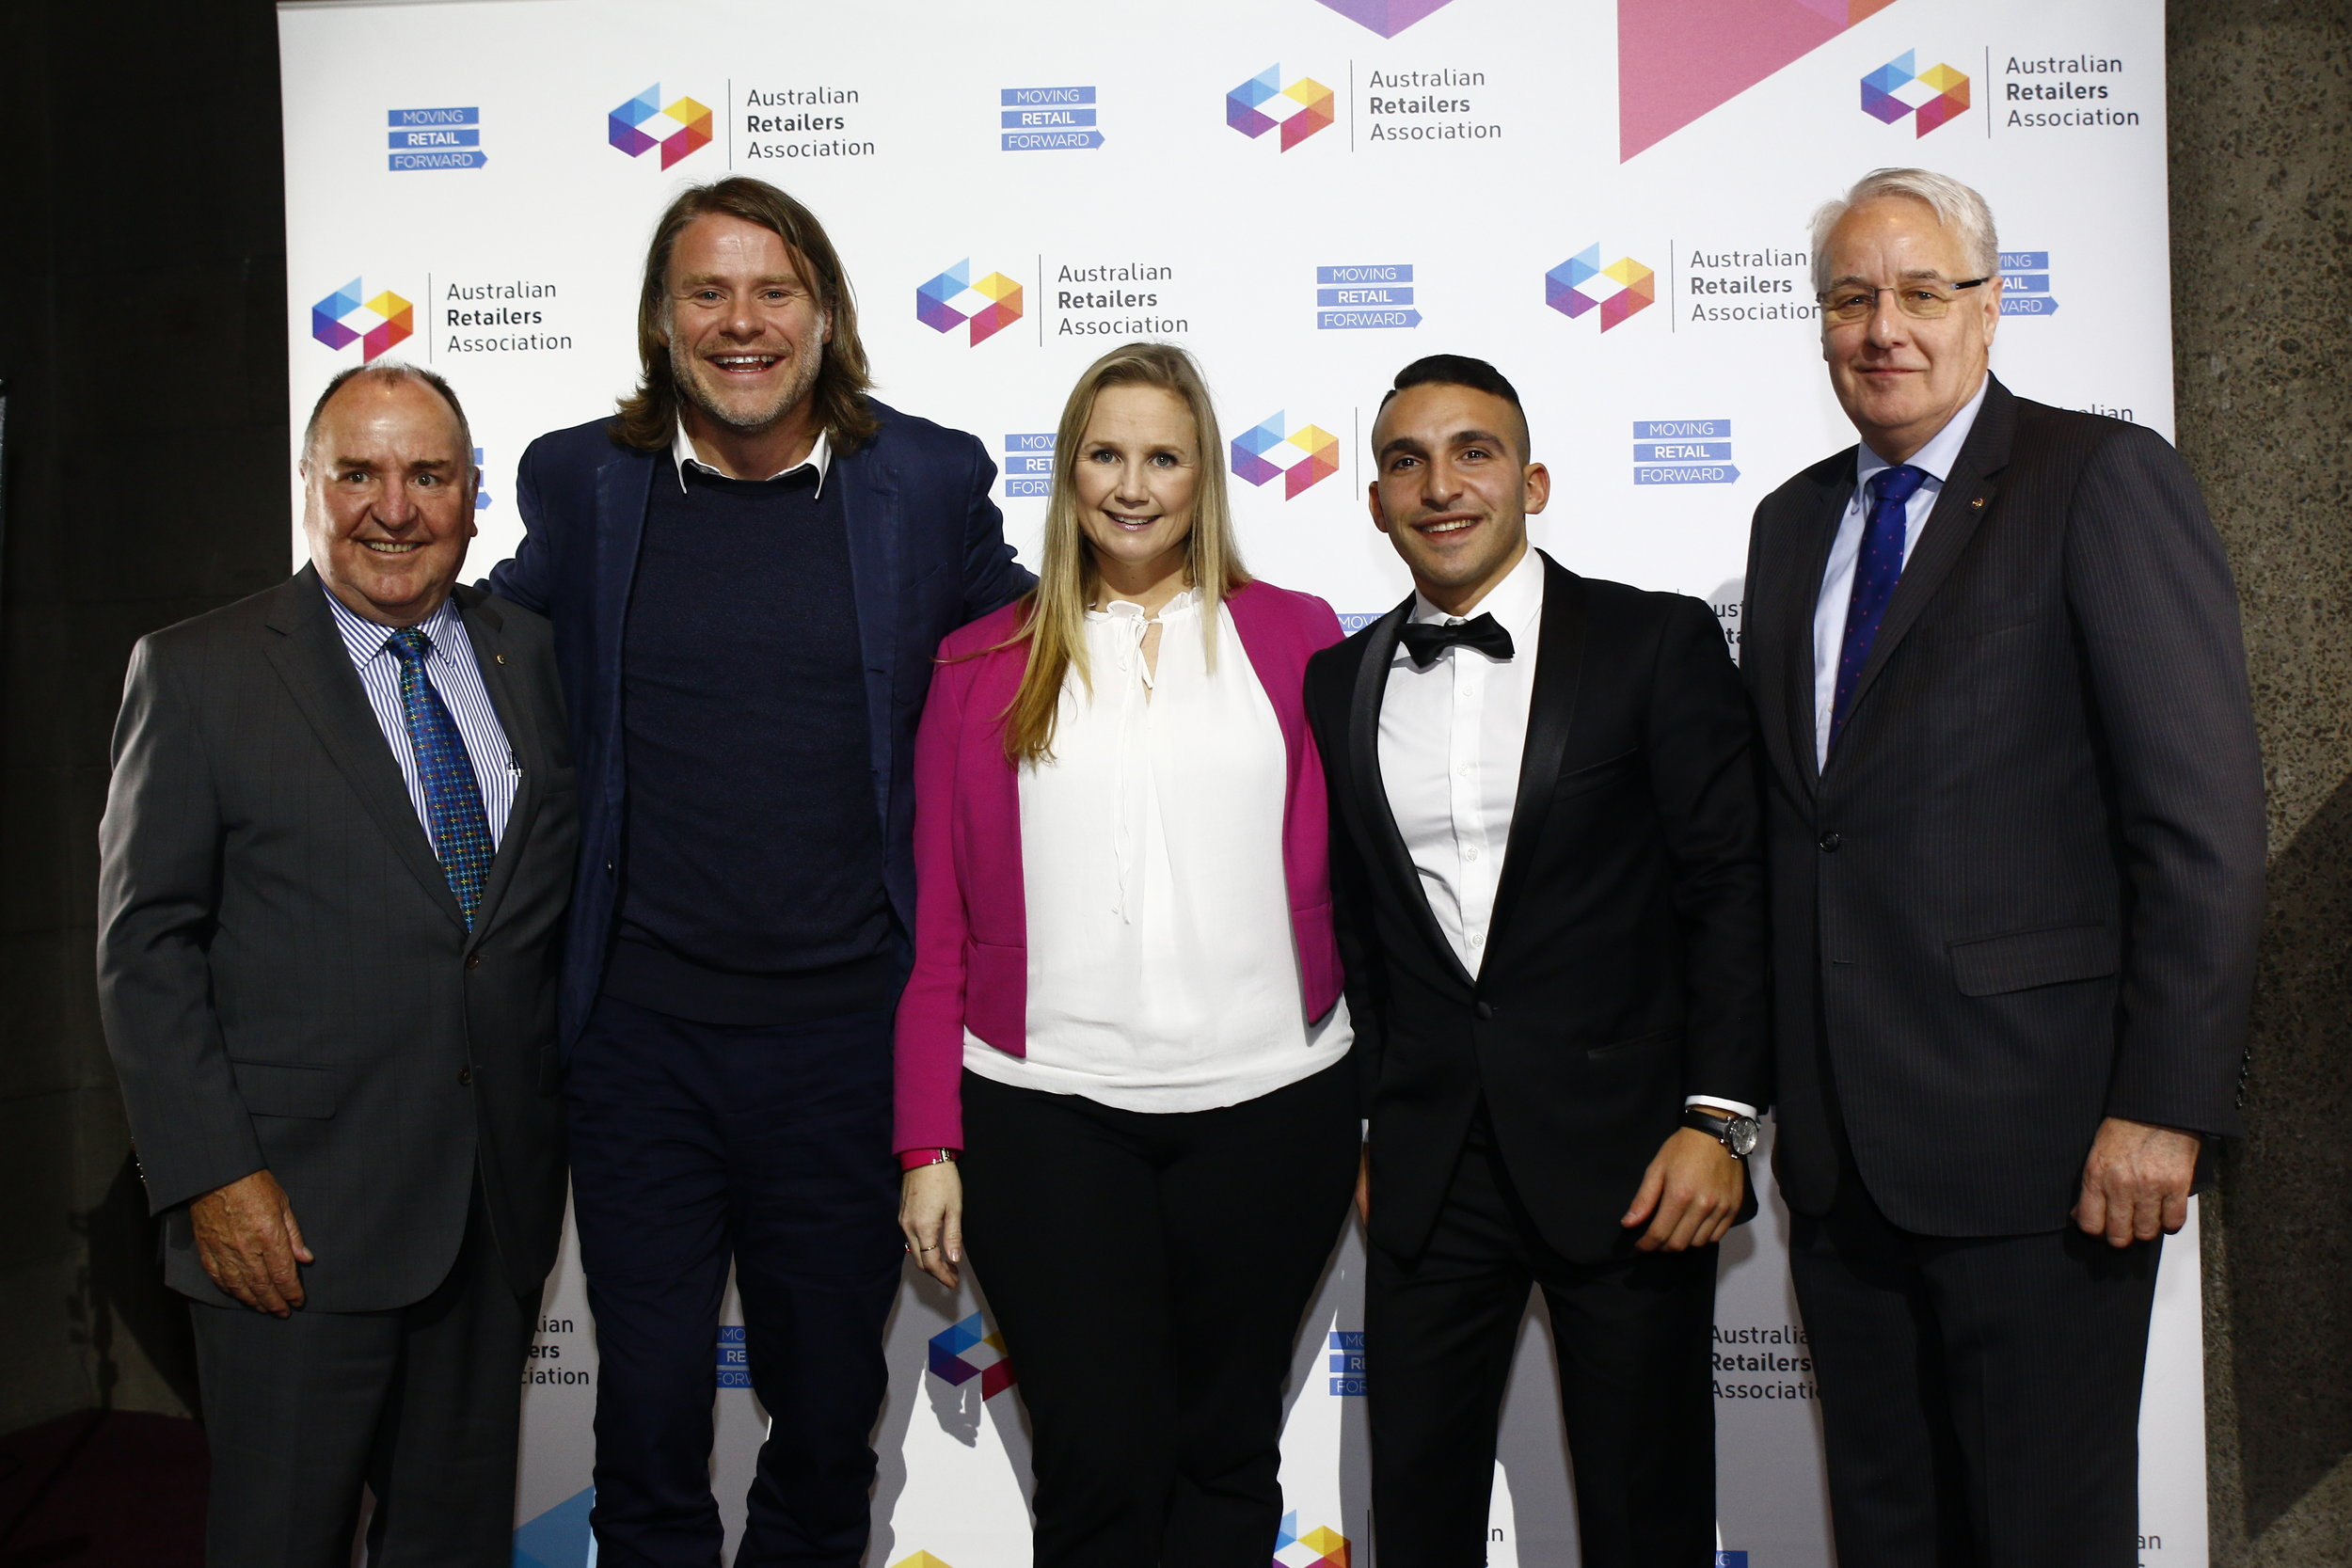 The Realise Group's National Account Director, Kate Gorman (centre), shown with Russell Zimmerman, Radek Sali & Roger Gillespie.